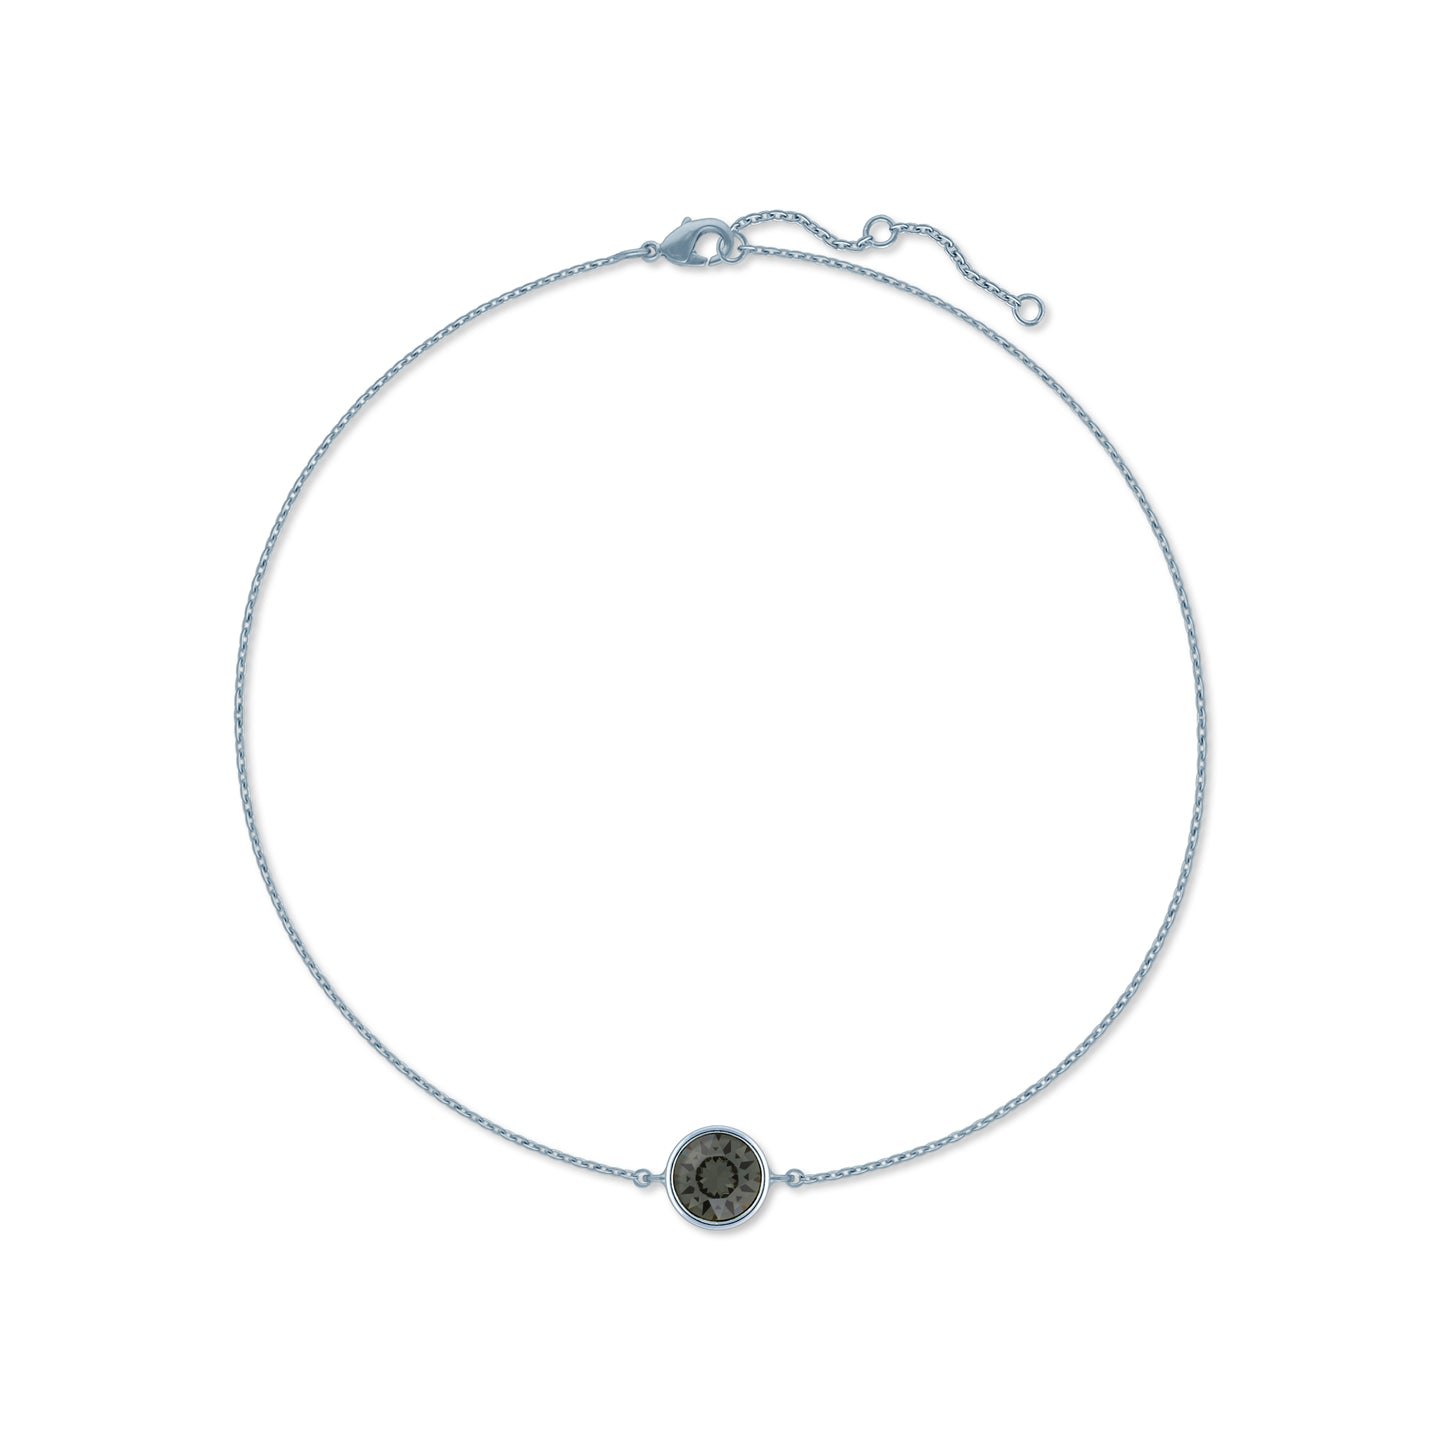 c3bb84e54 Harley Chain Bracelet with Black Diamond Round Crystals from Swarovski  Silver Toned Rhodium Plated - Ed